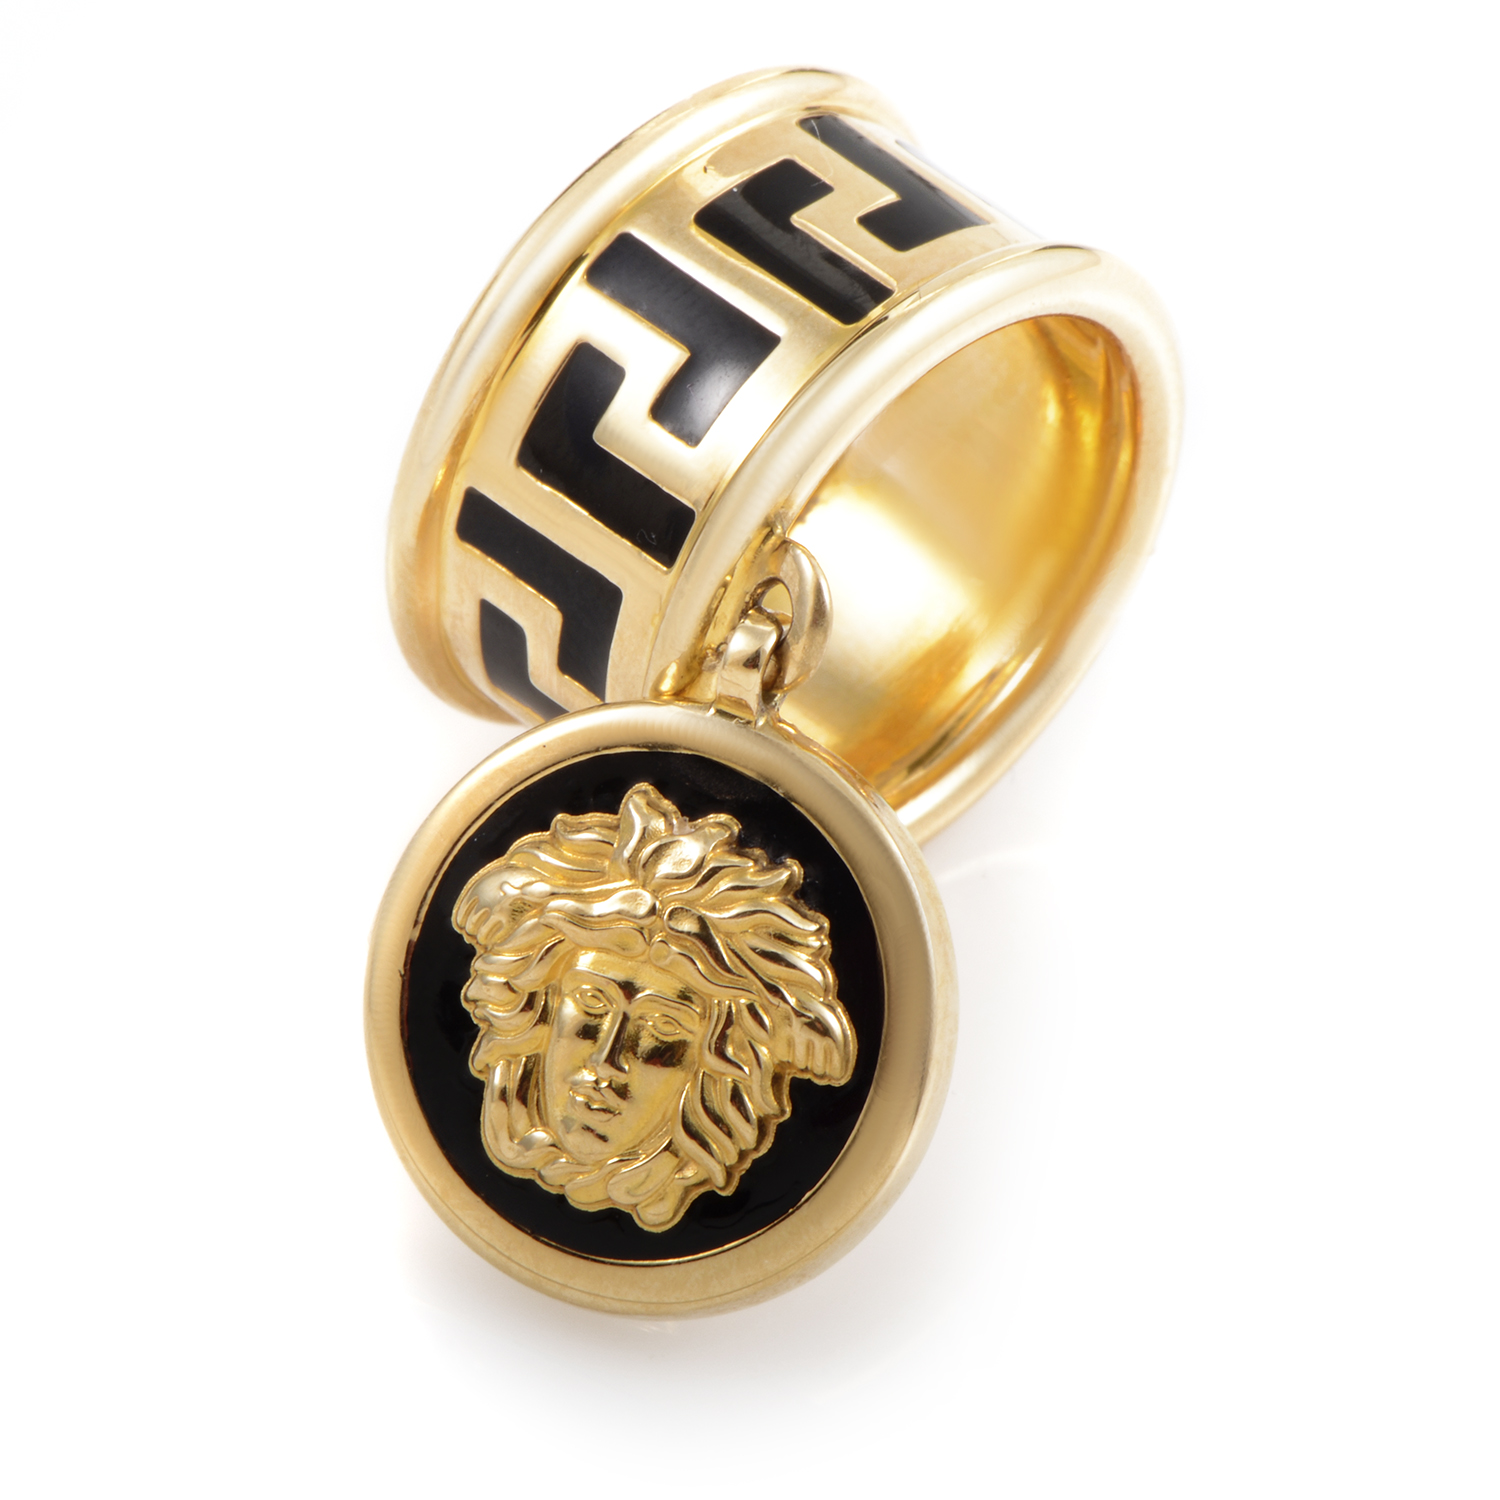 Versace 18K Yellow Gold Enamel Medusa Head Charm Ring